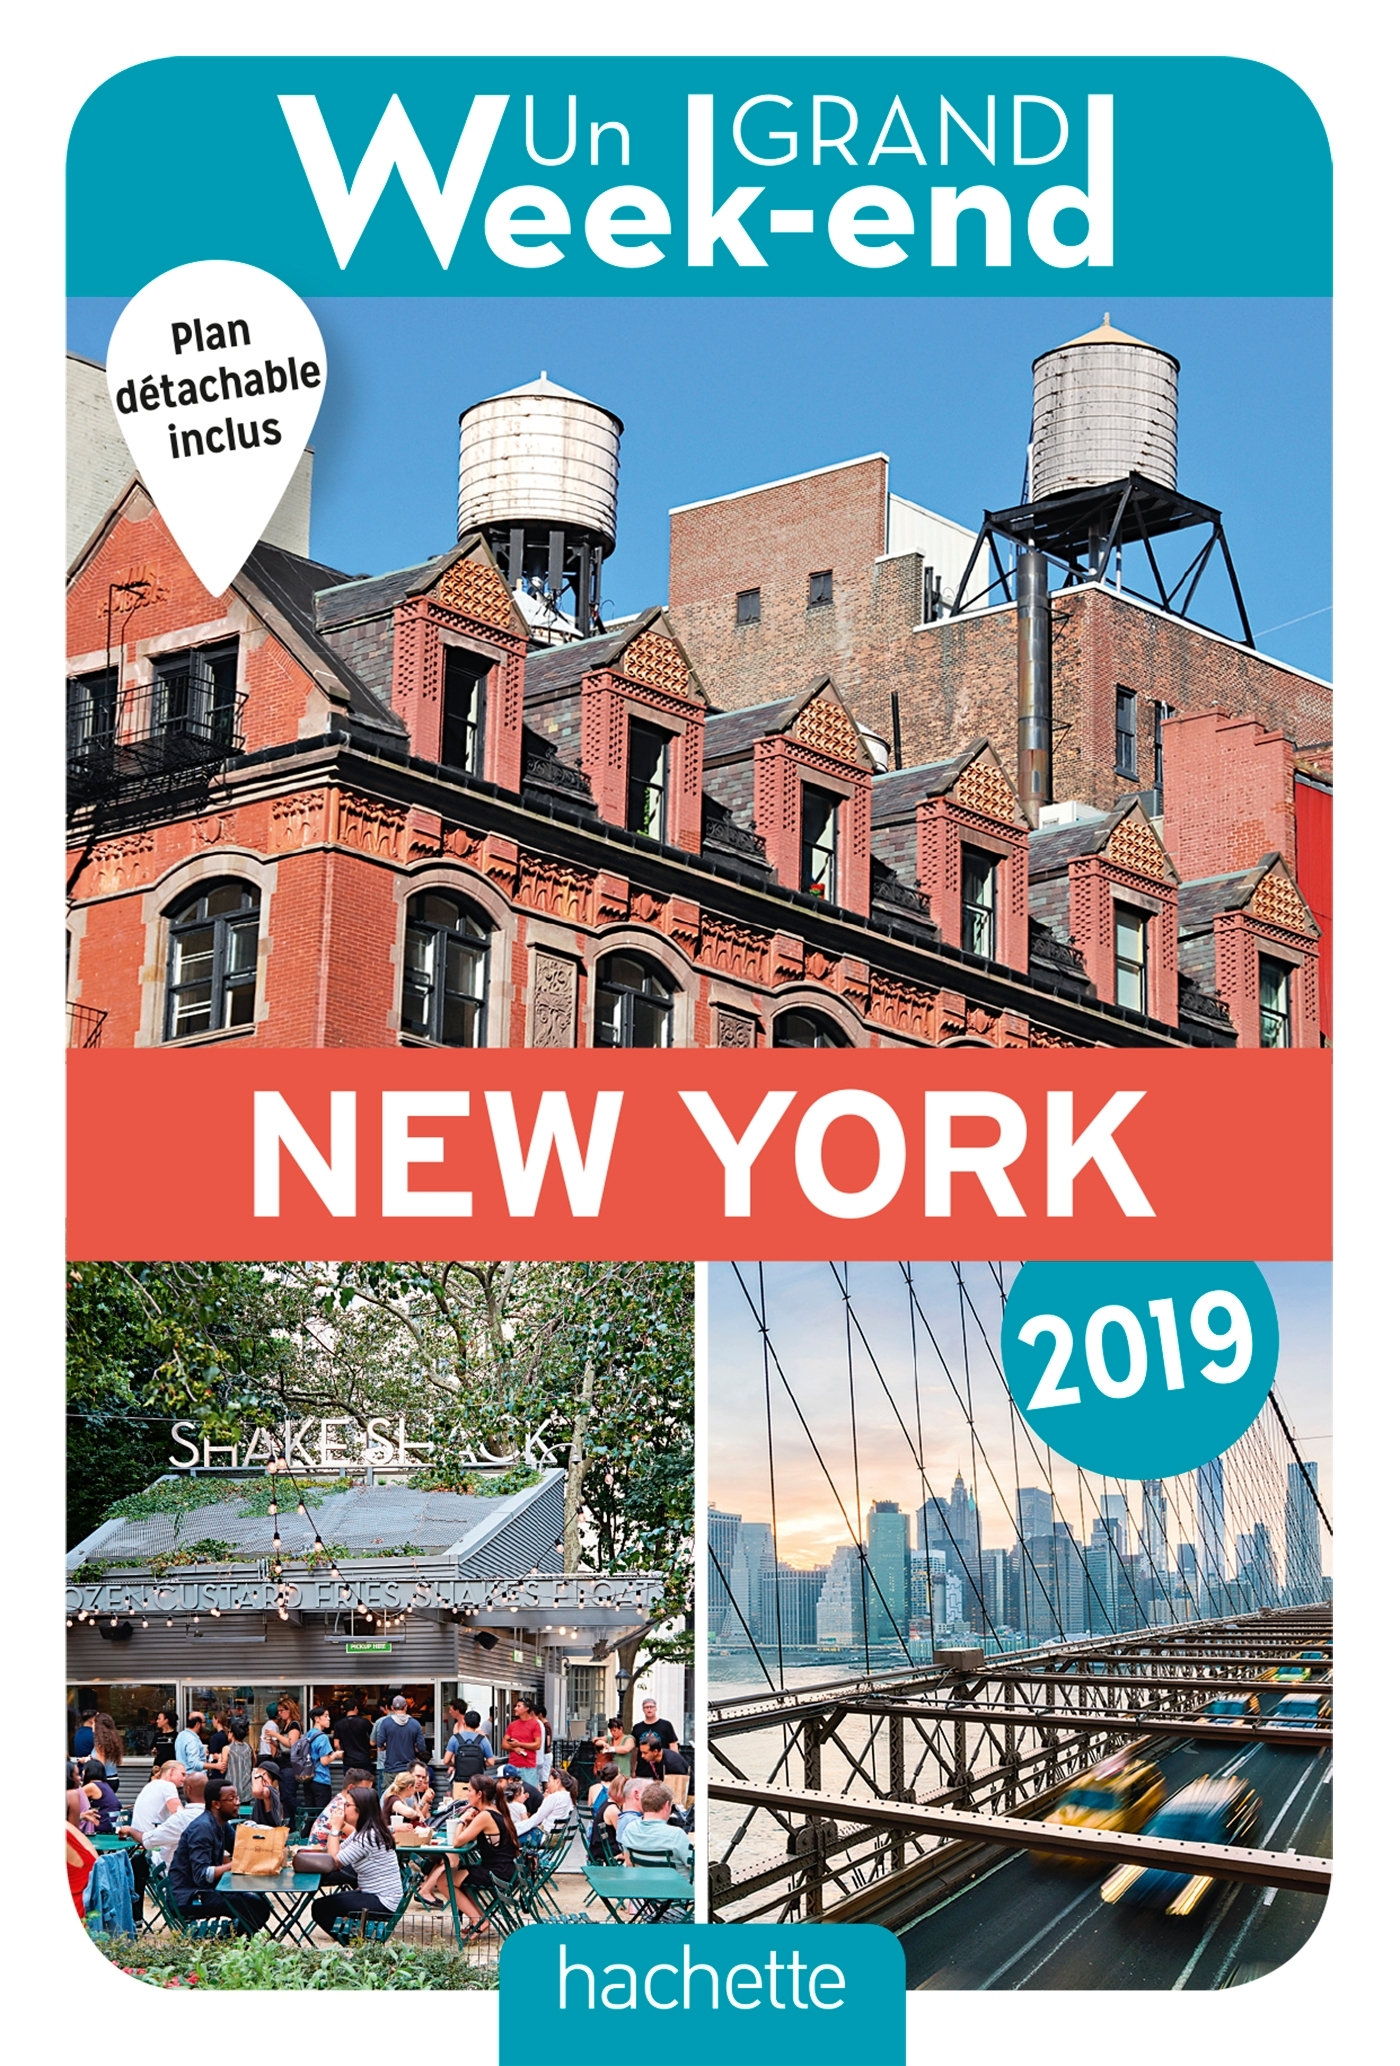 GUIDE UN GRAND WEEK-END A NEW YORK 2019